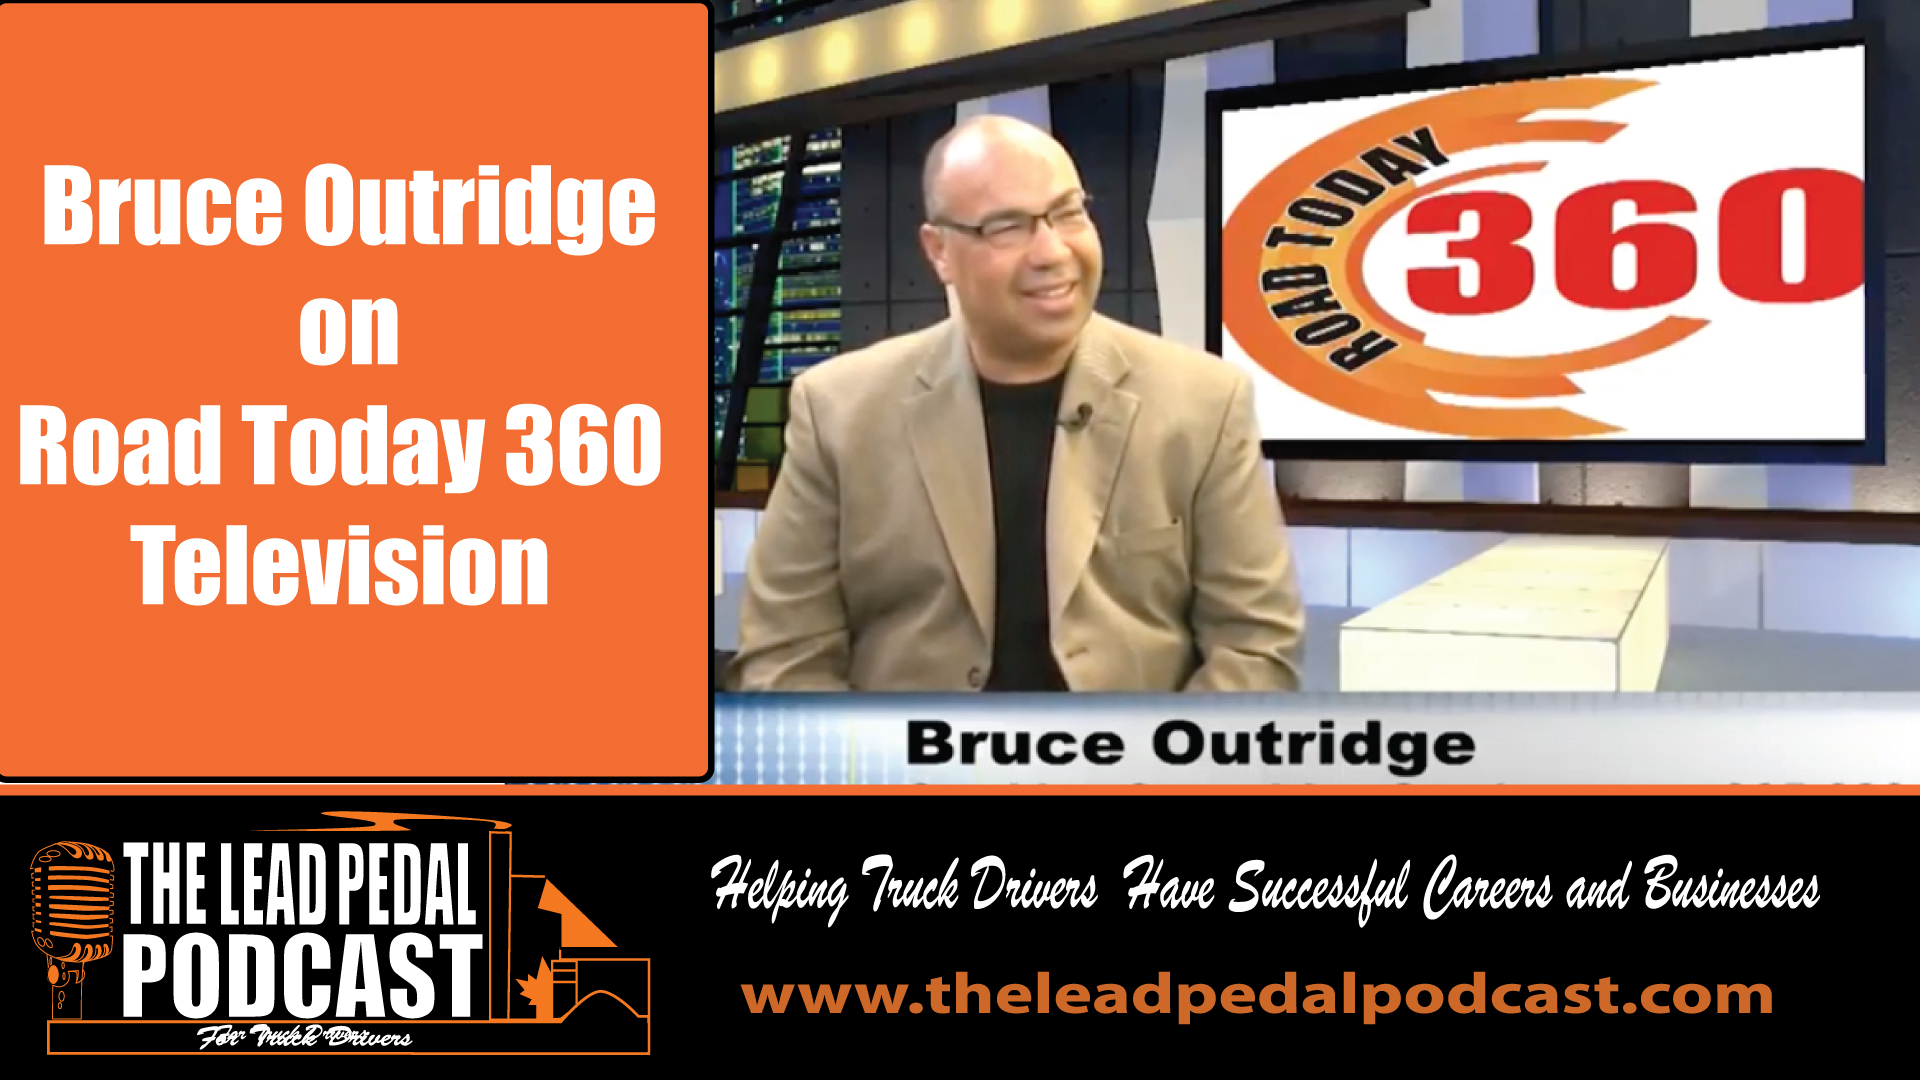 Bruce on Road Today 360 Television